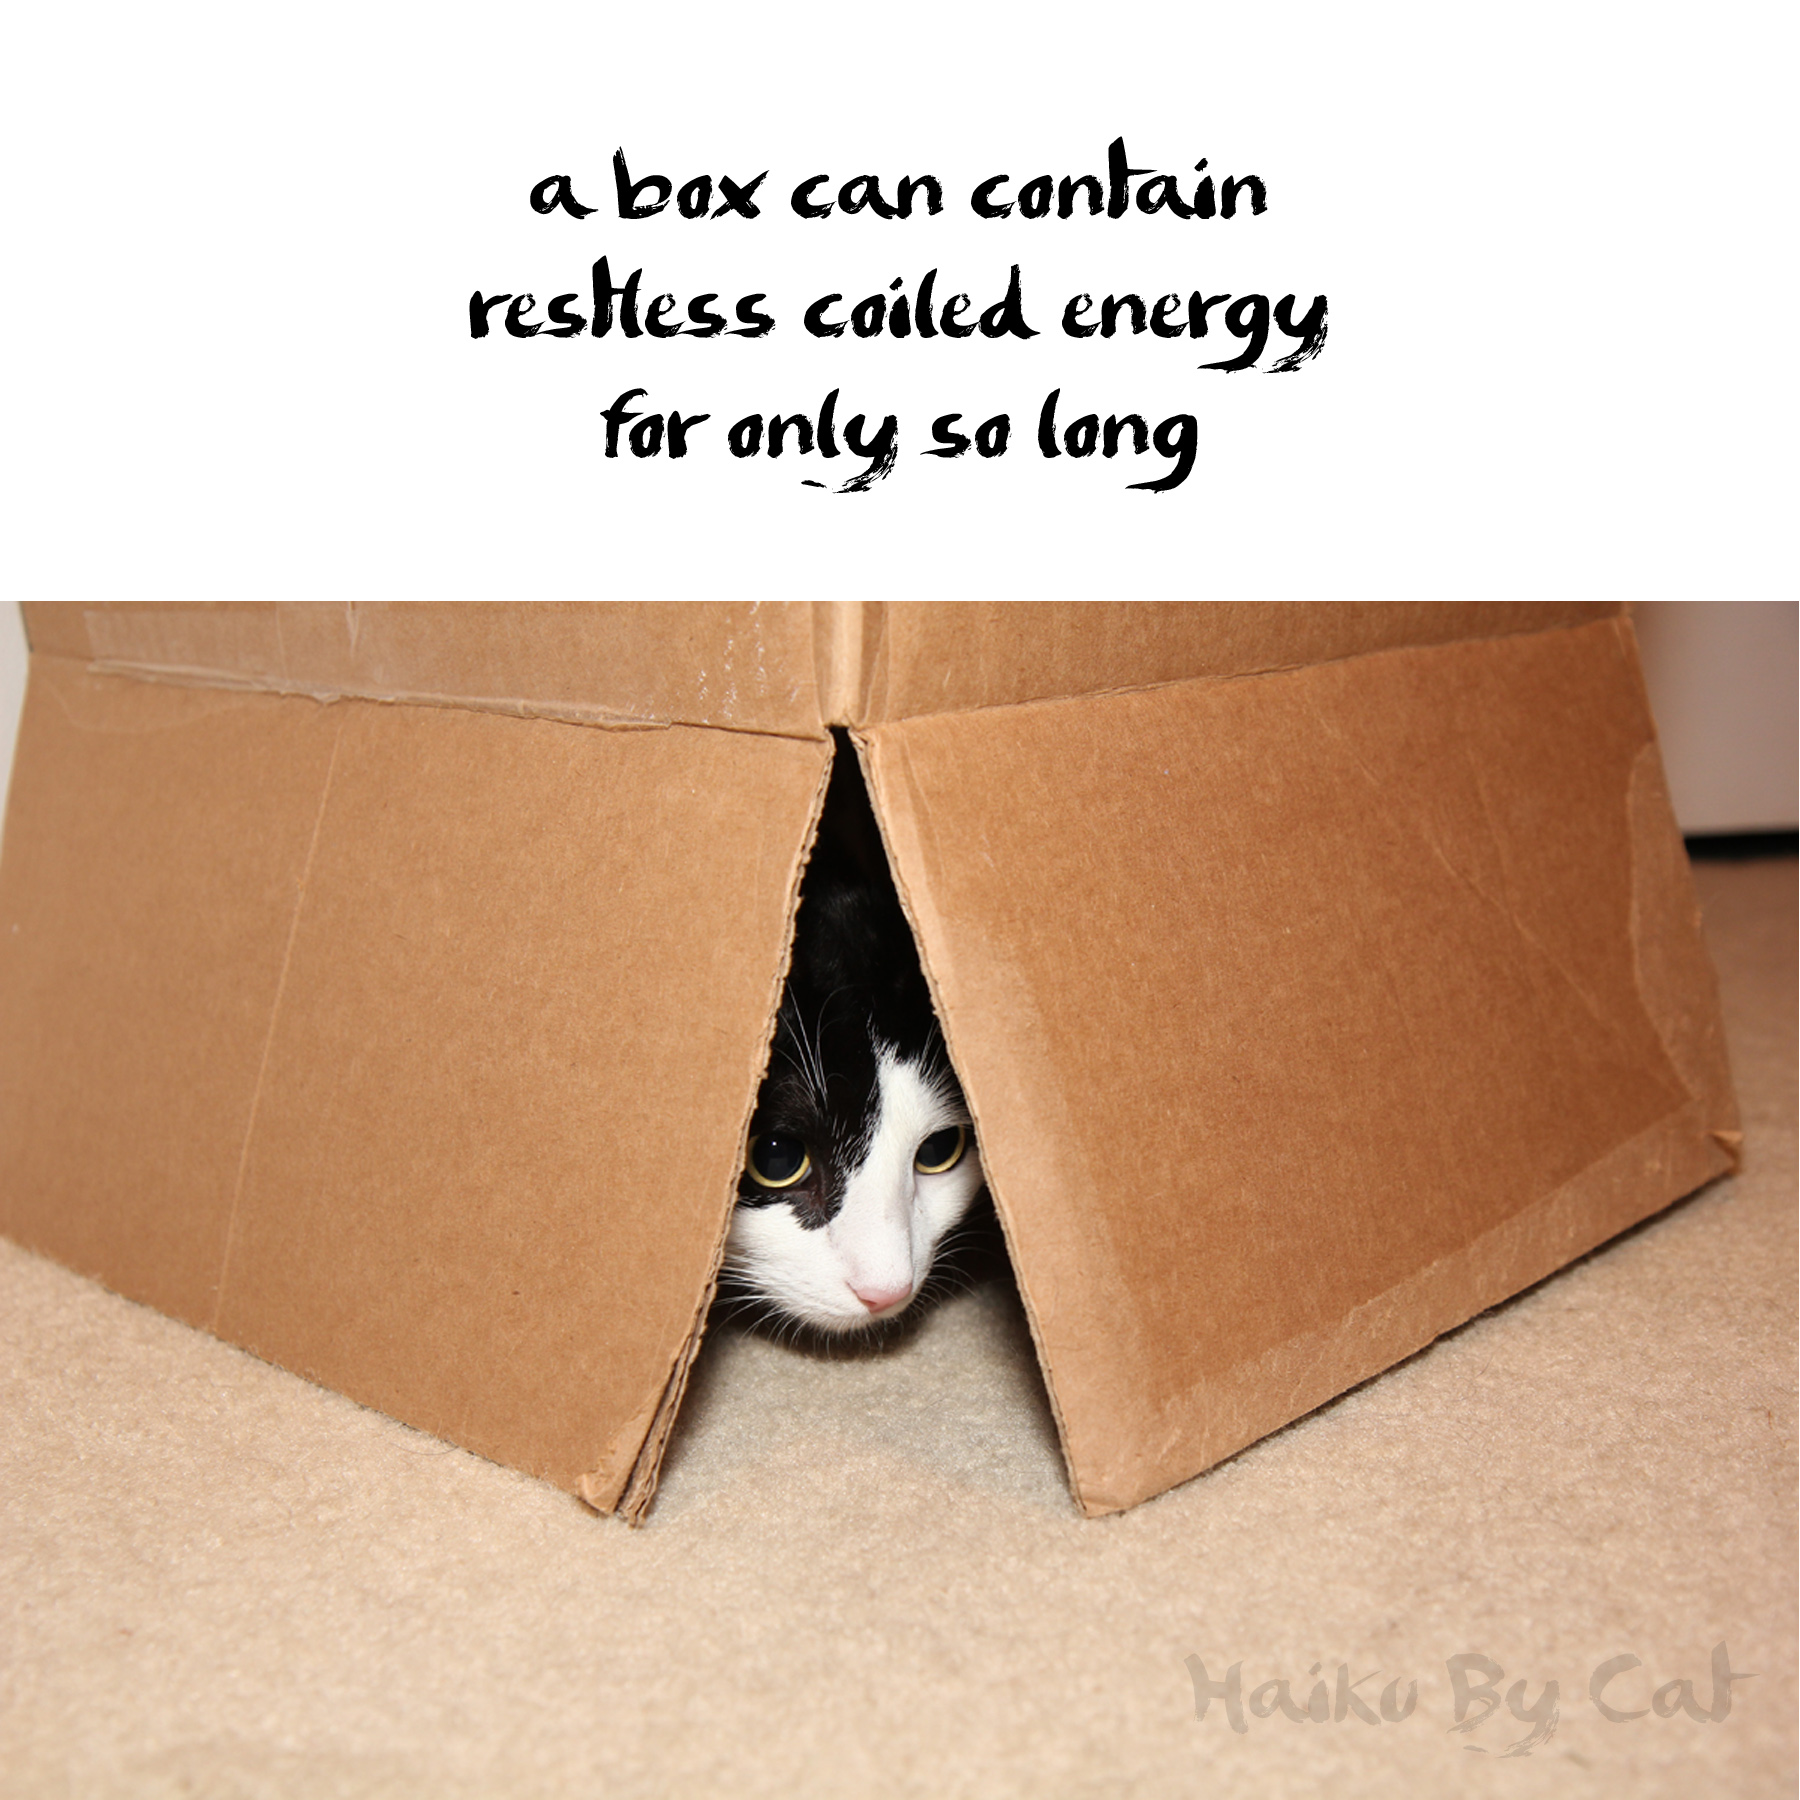 Haiku by Cat: a box can contain / restless coiled energy / for only so long